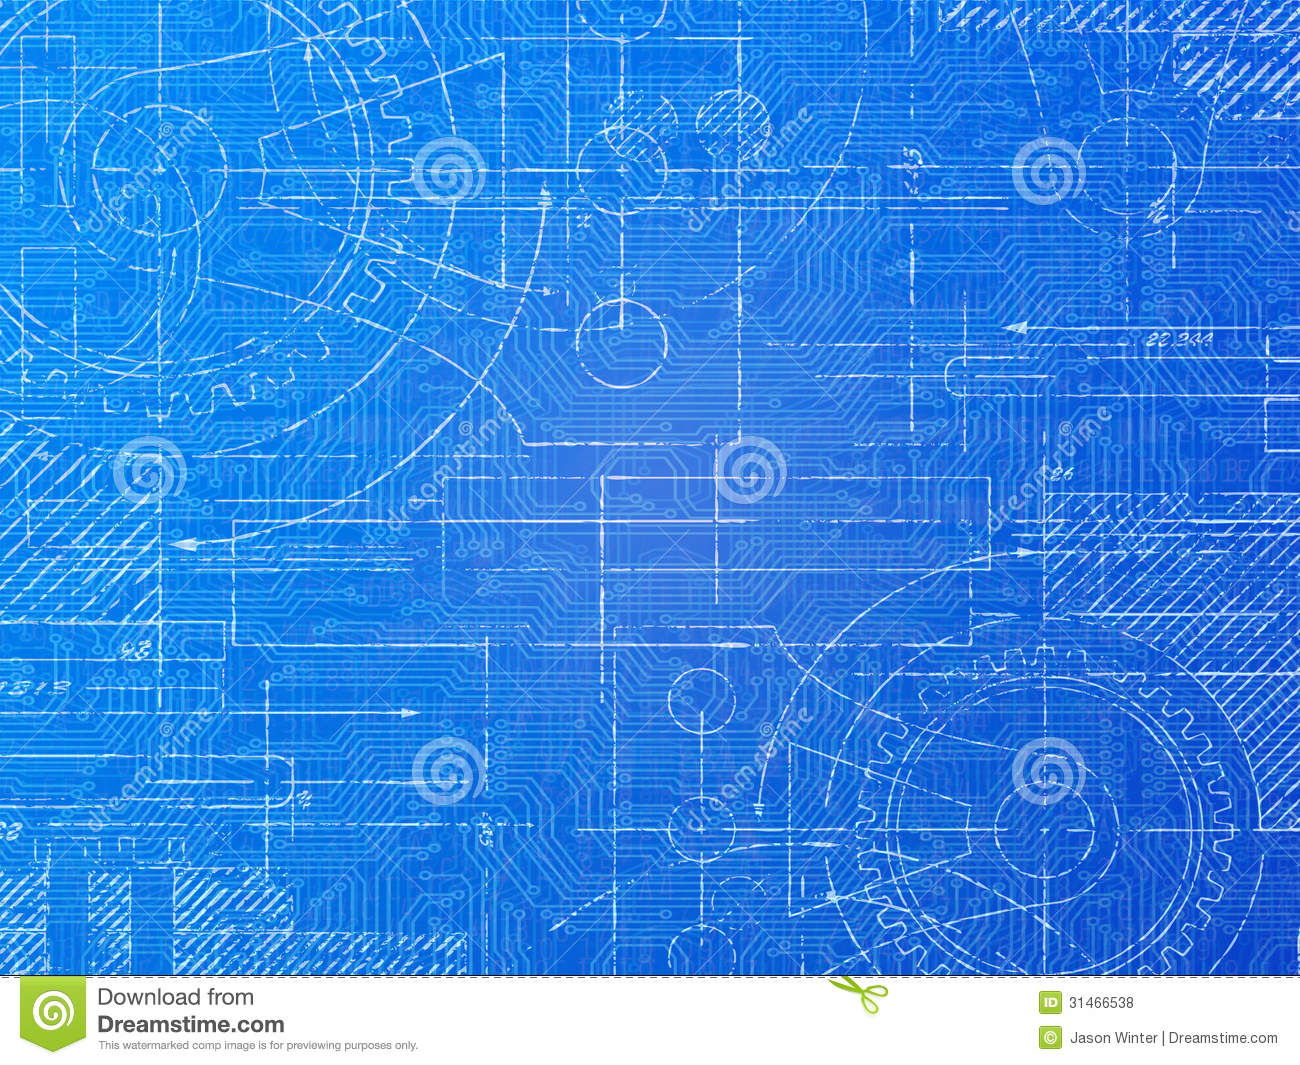 Electronic wallpaper background wallpapersafari for Engineering blueprints